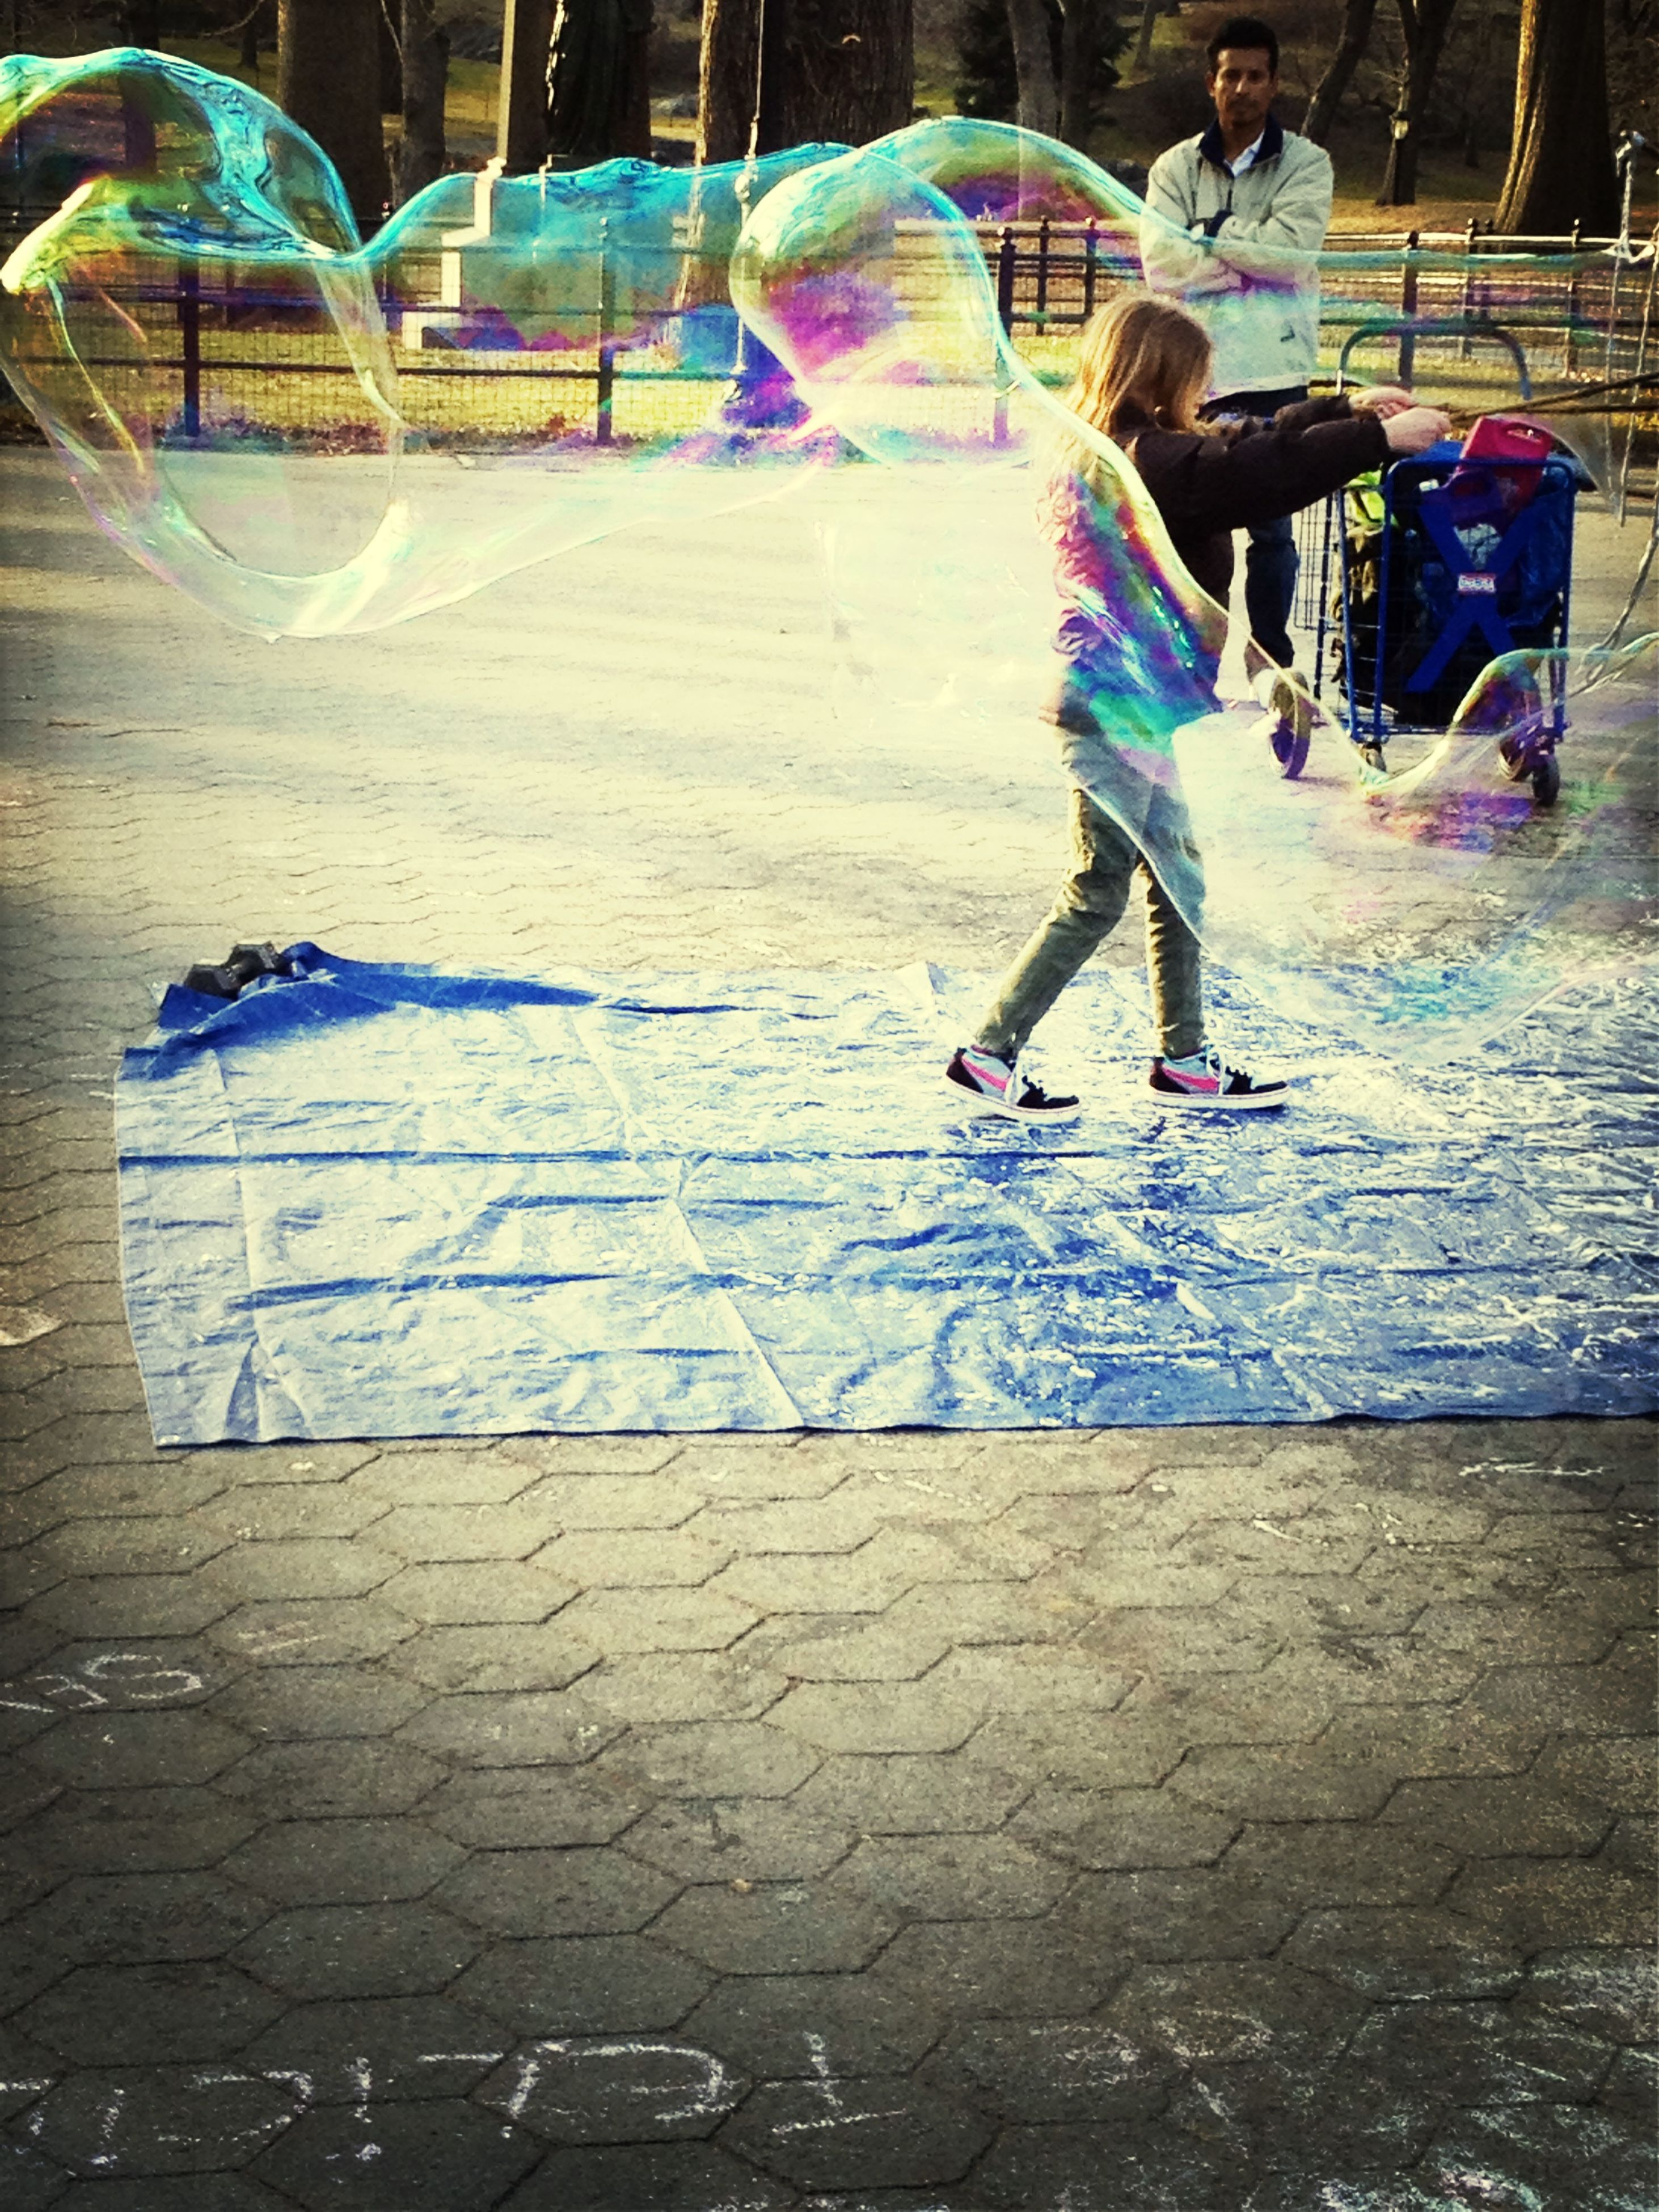 lifestyles, full length, leisure activity, childhood, boys, casual clothing, men, elementary age, girls, fun, street, enjoyment, playing, walking, person, skill, playful